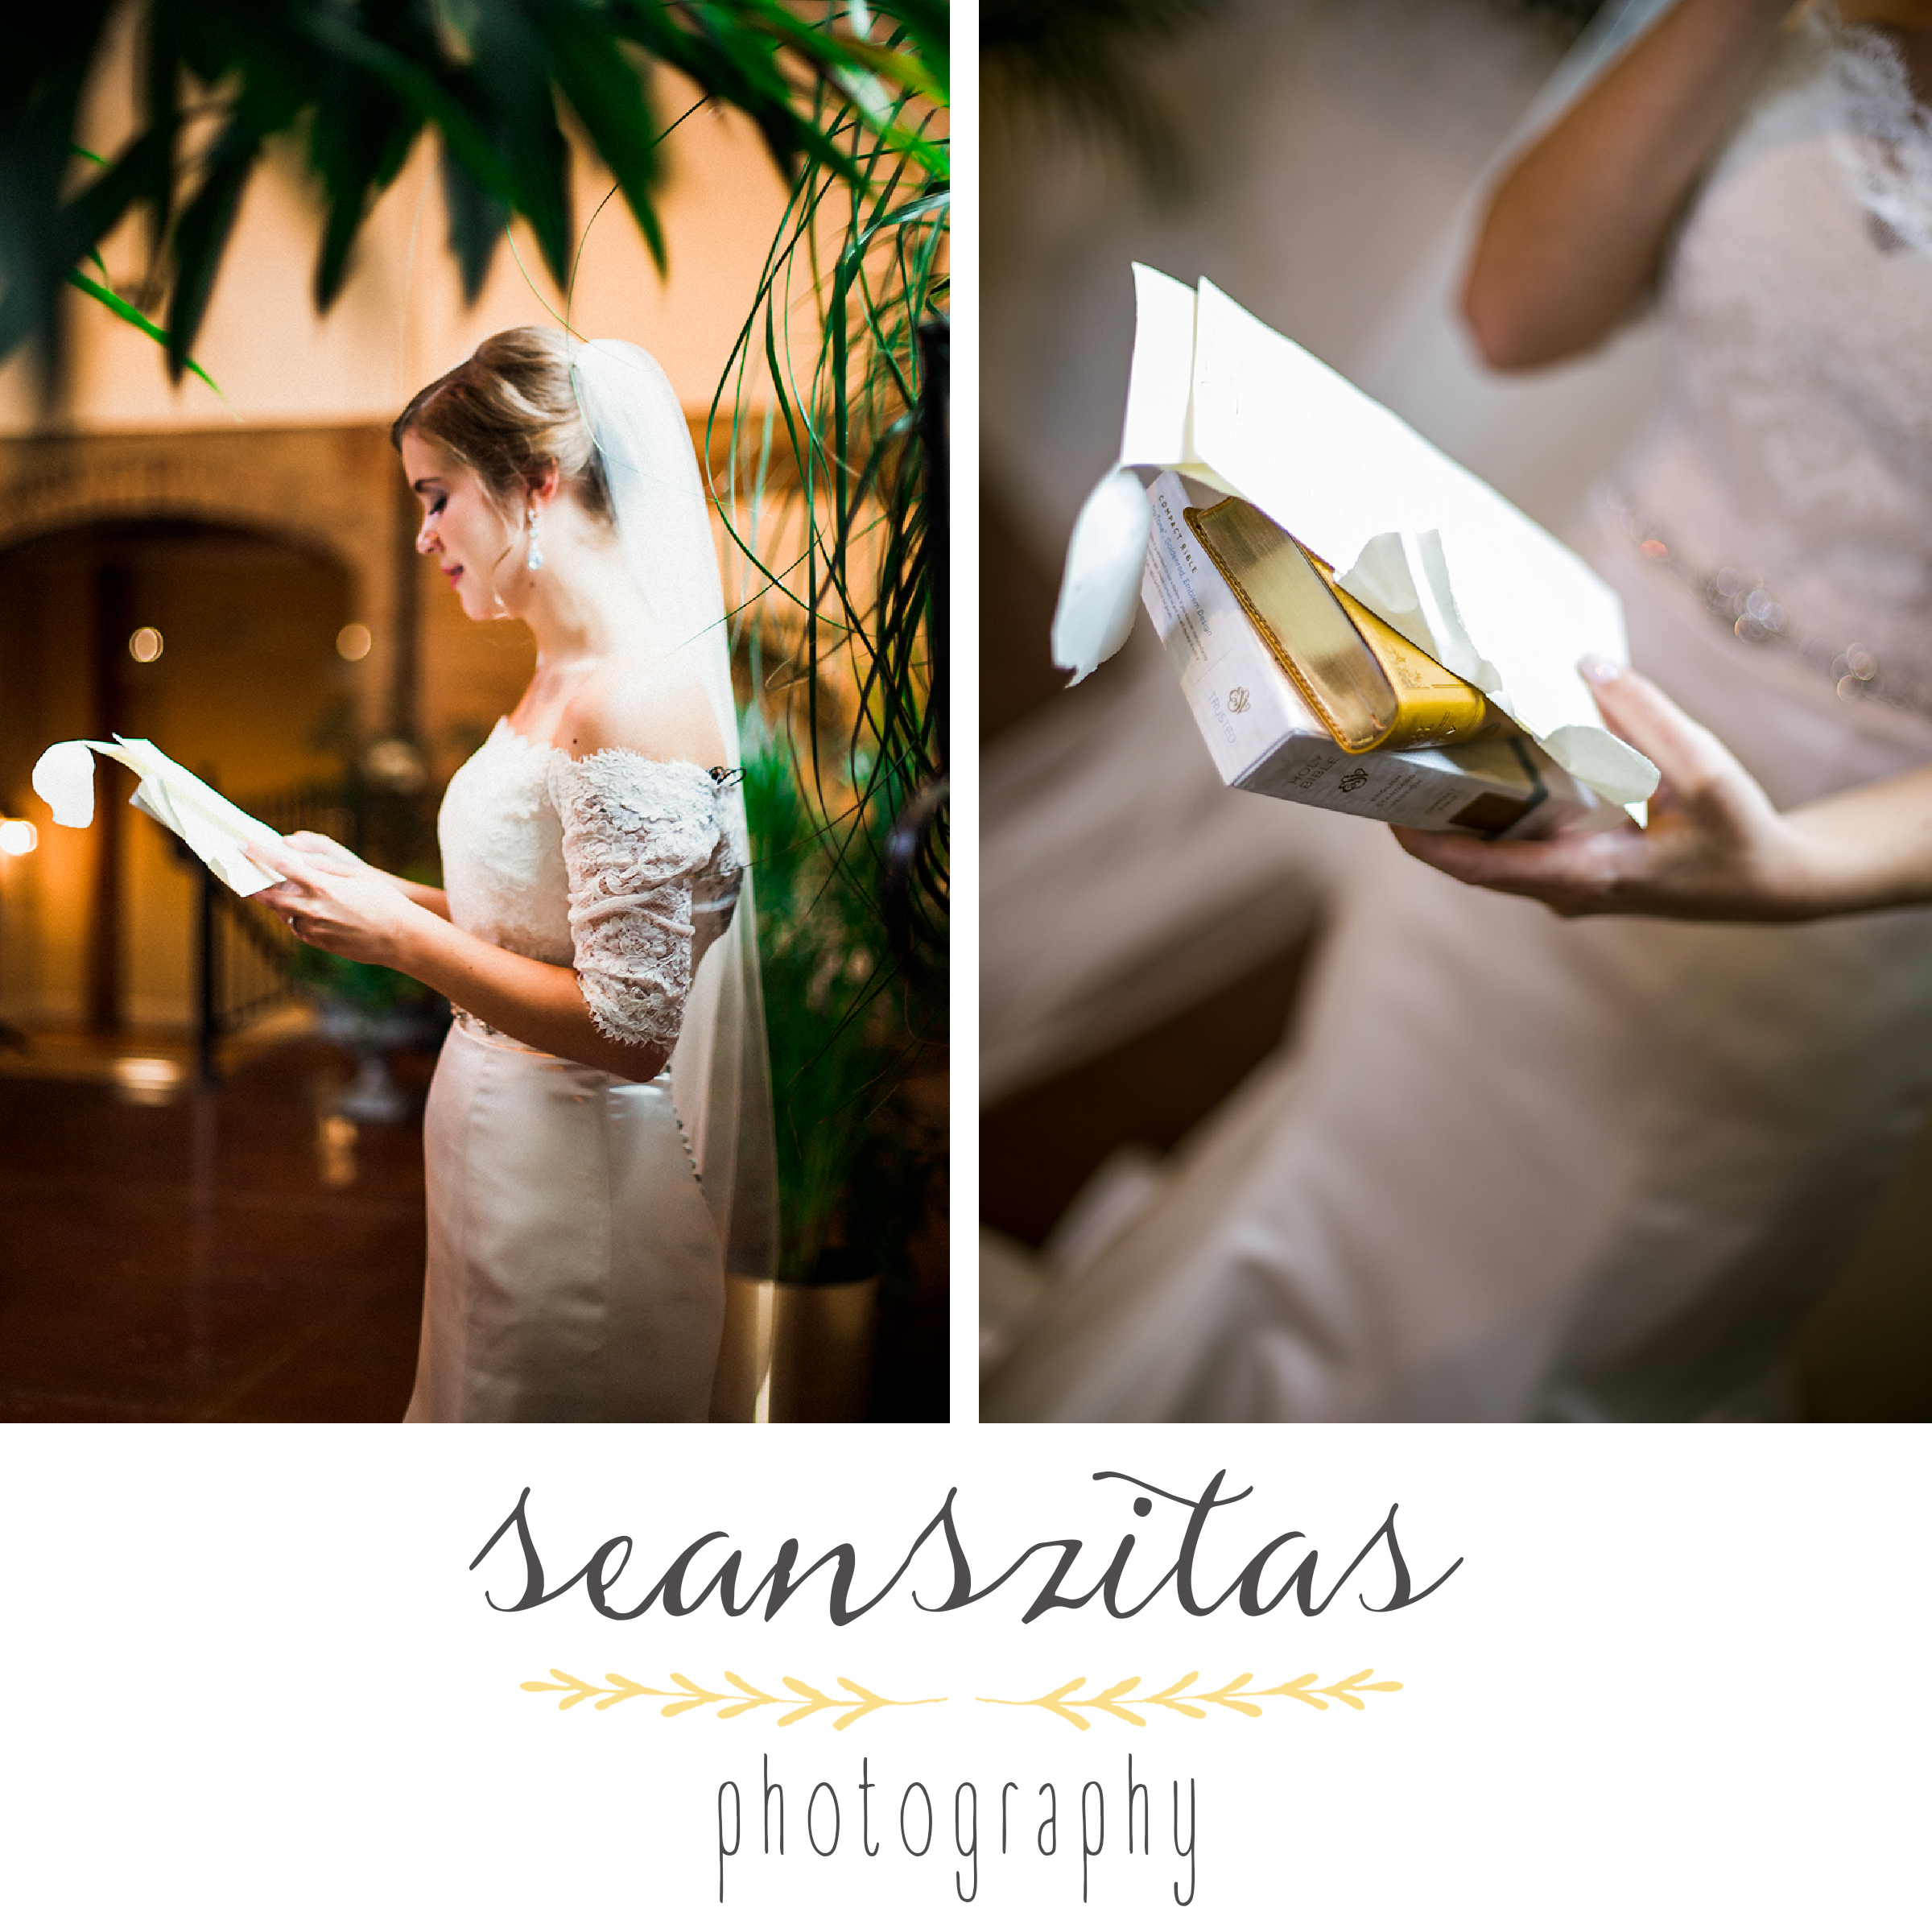 sean szitas photography wedding greensboro durham